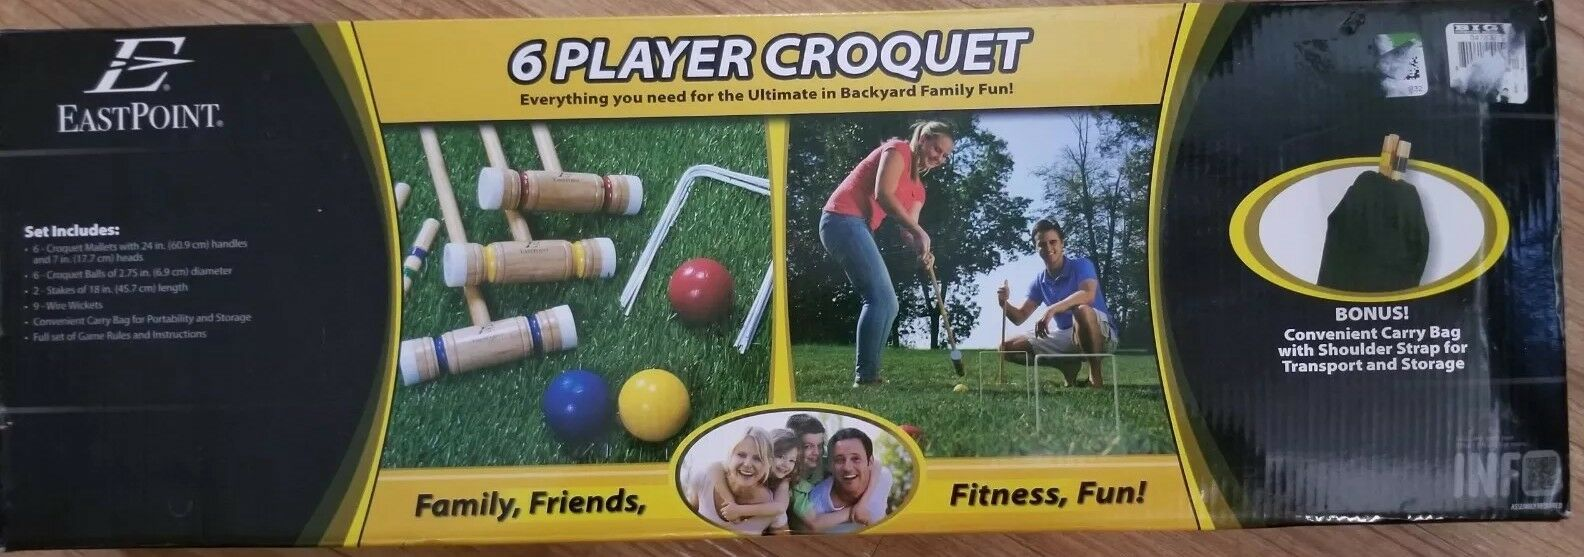 East Point Croquet Set 6 player with carry bag